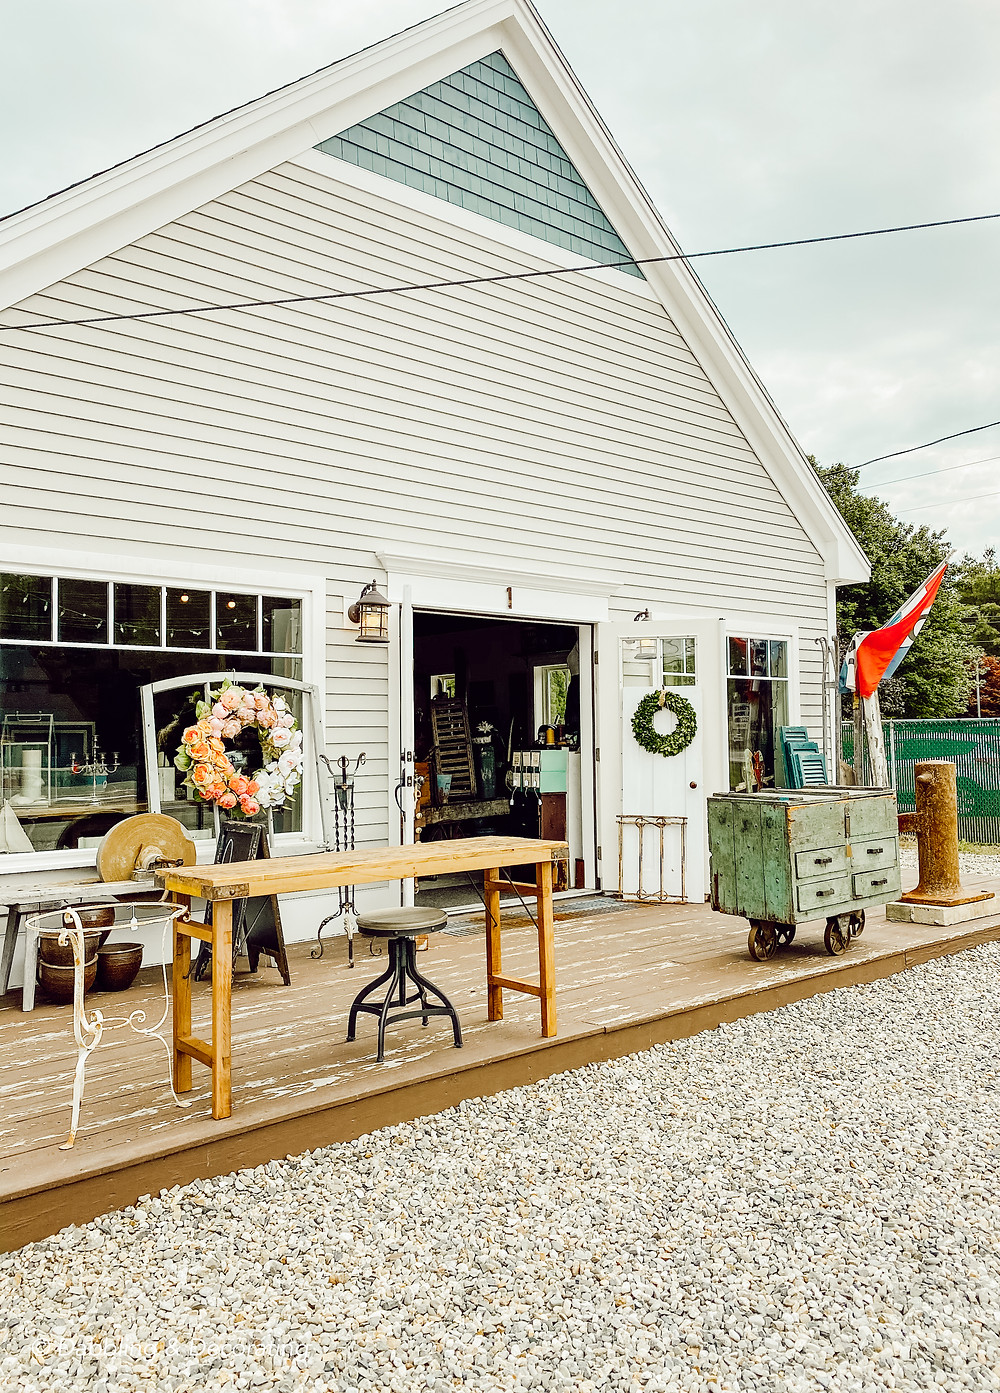 Thrifting for Vintage Treasures in New England